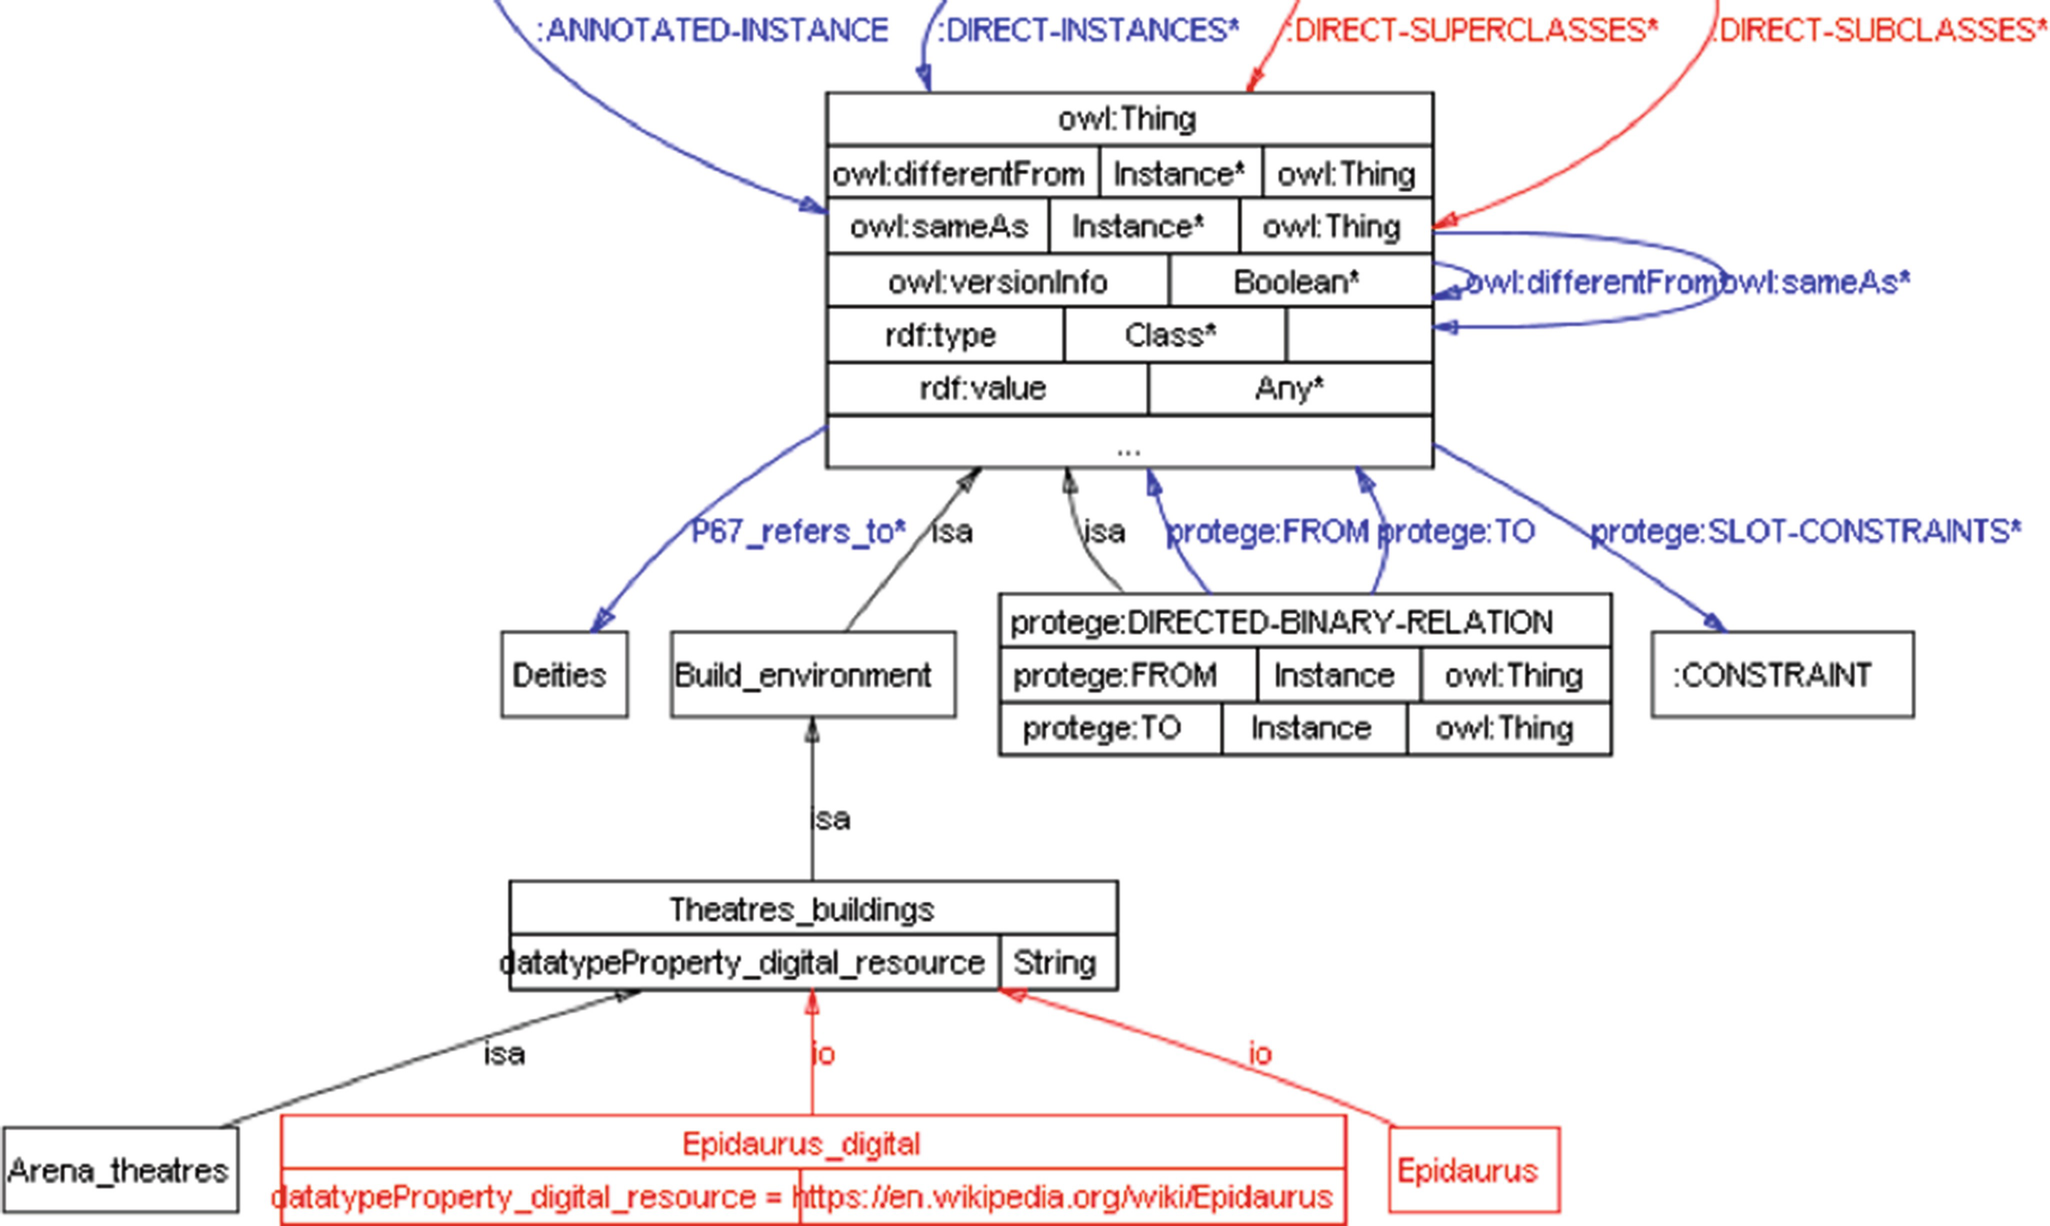 The Use of Ontologies for Creating Semantic Links Between